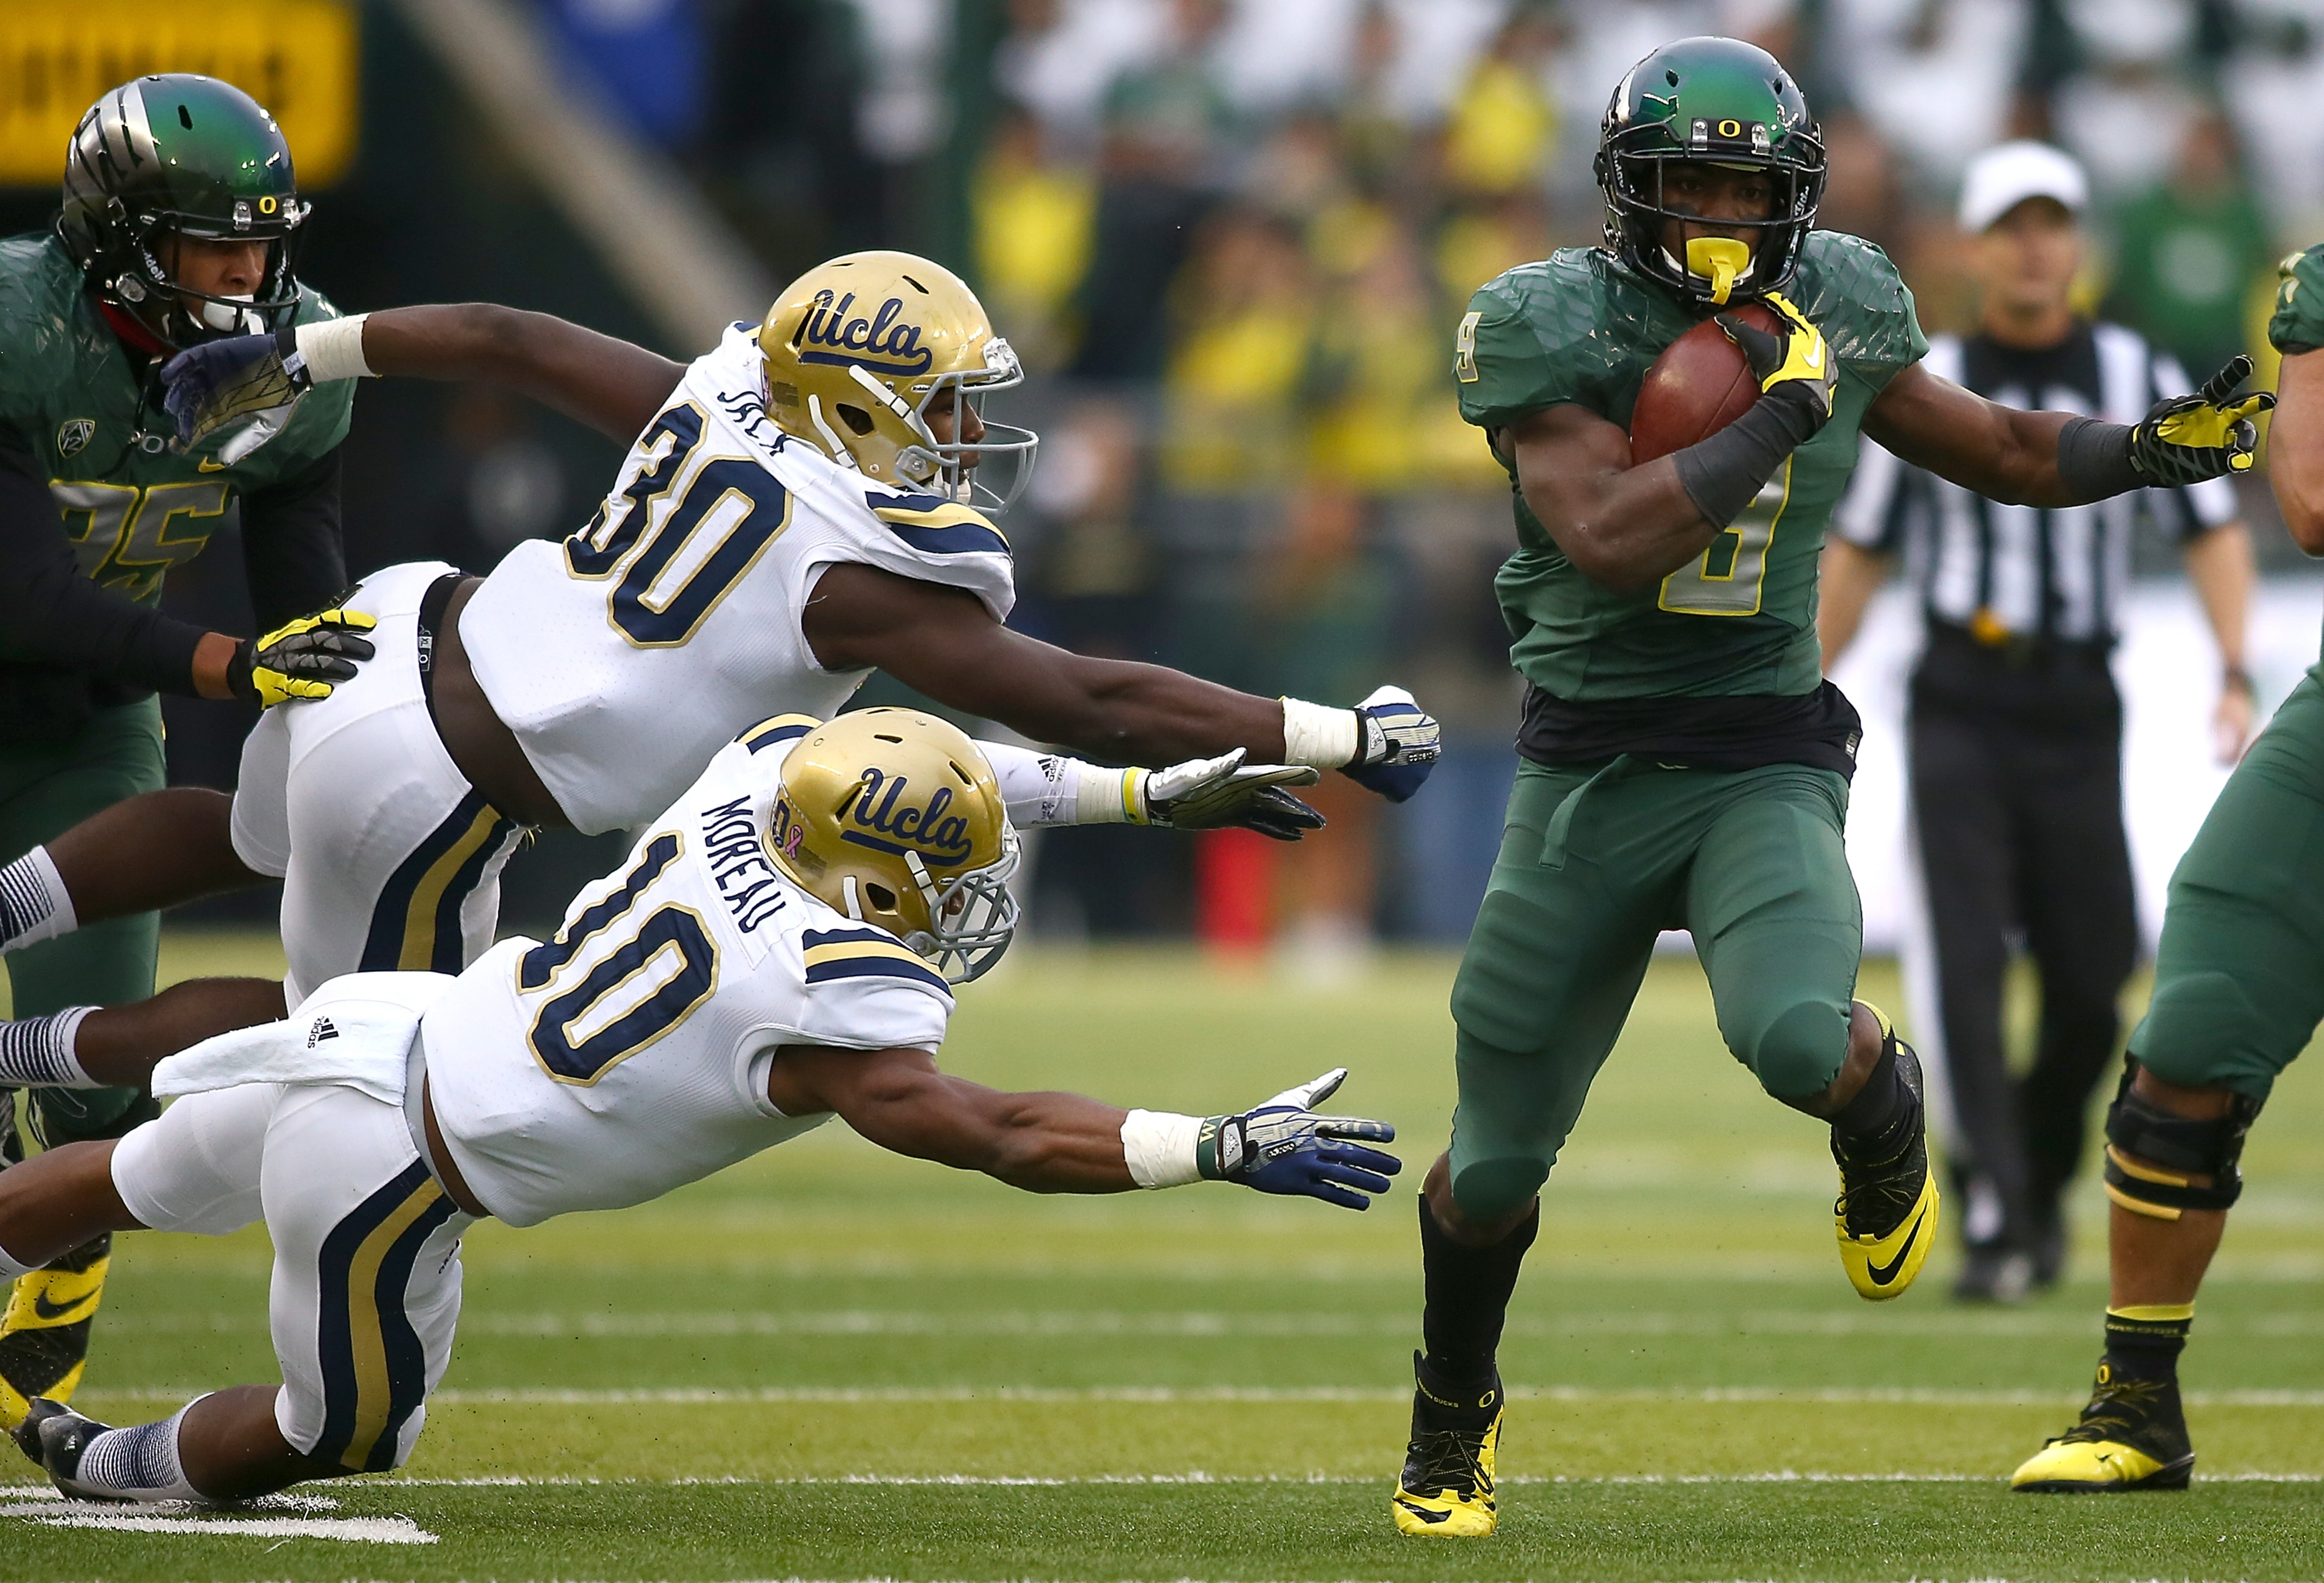 The Bruins are just out of reach of becoming an elite Pac-12 team.